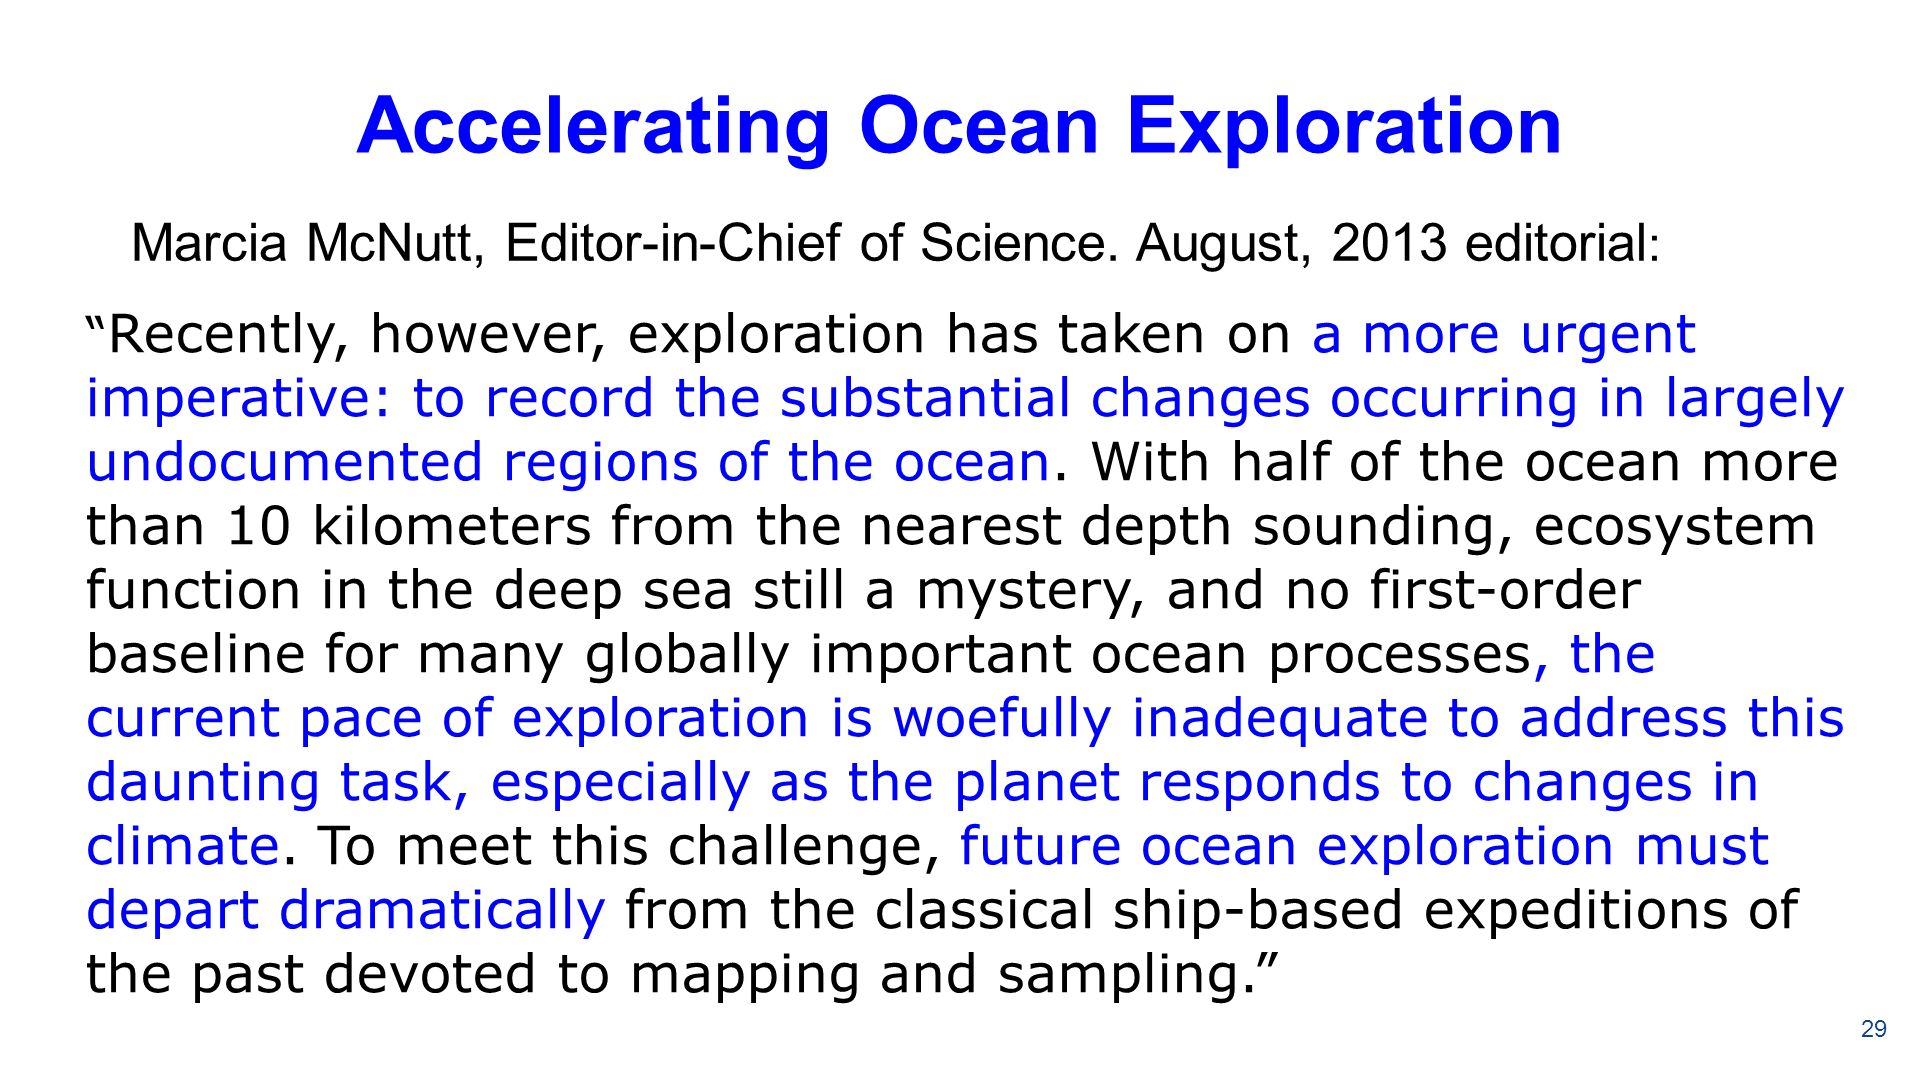 Accelerating Ocean Exploration Recently, however, exploration has taken on a more urgent imperative: to record the substantial changes occurring in la